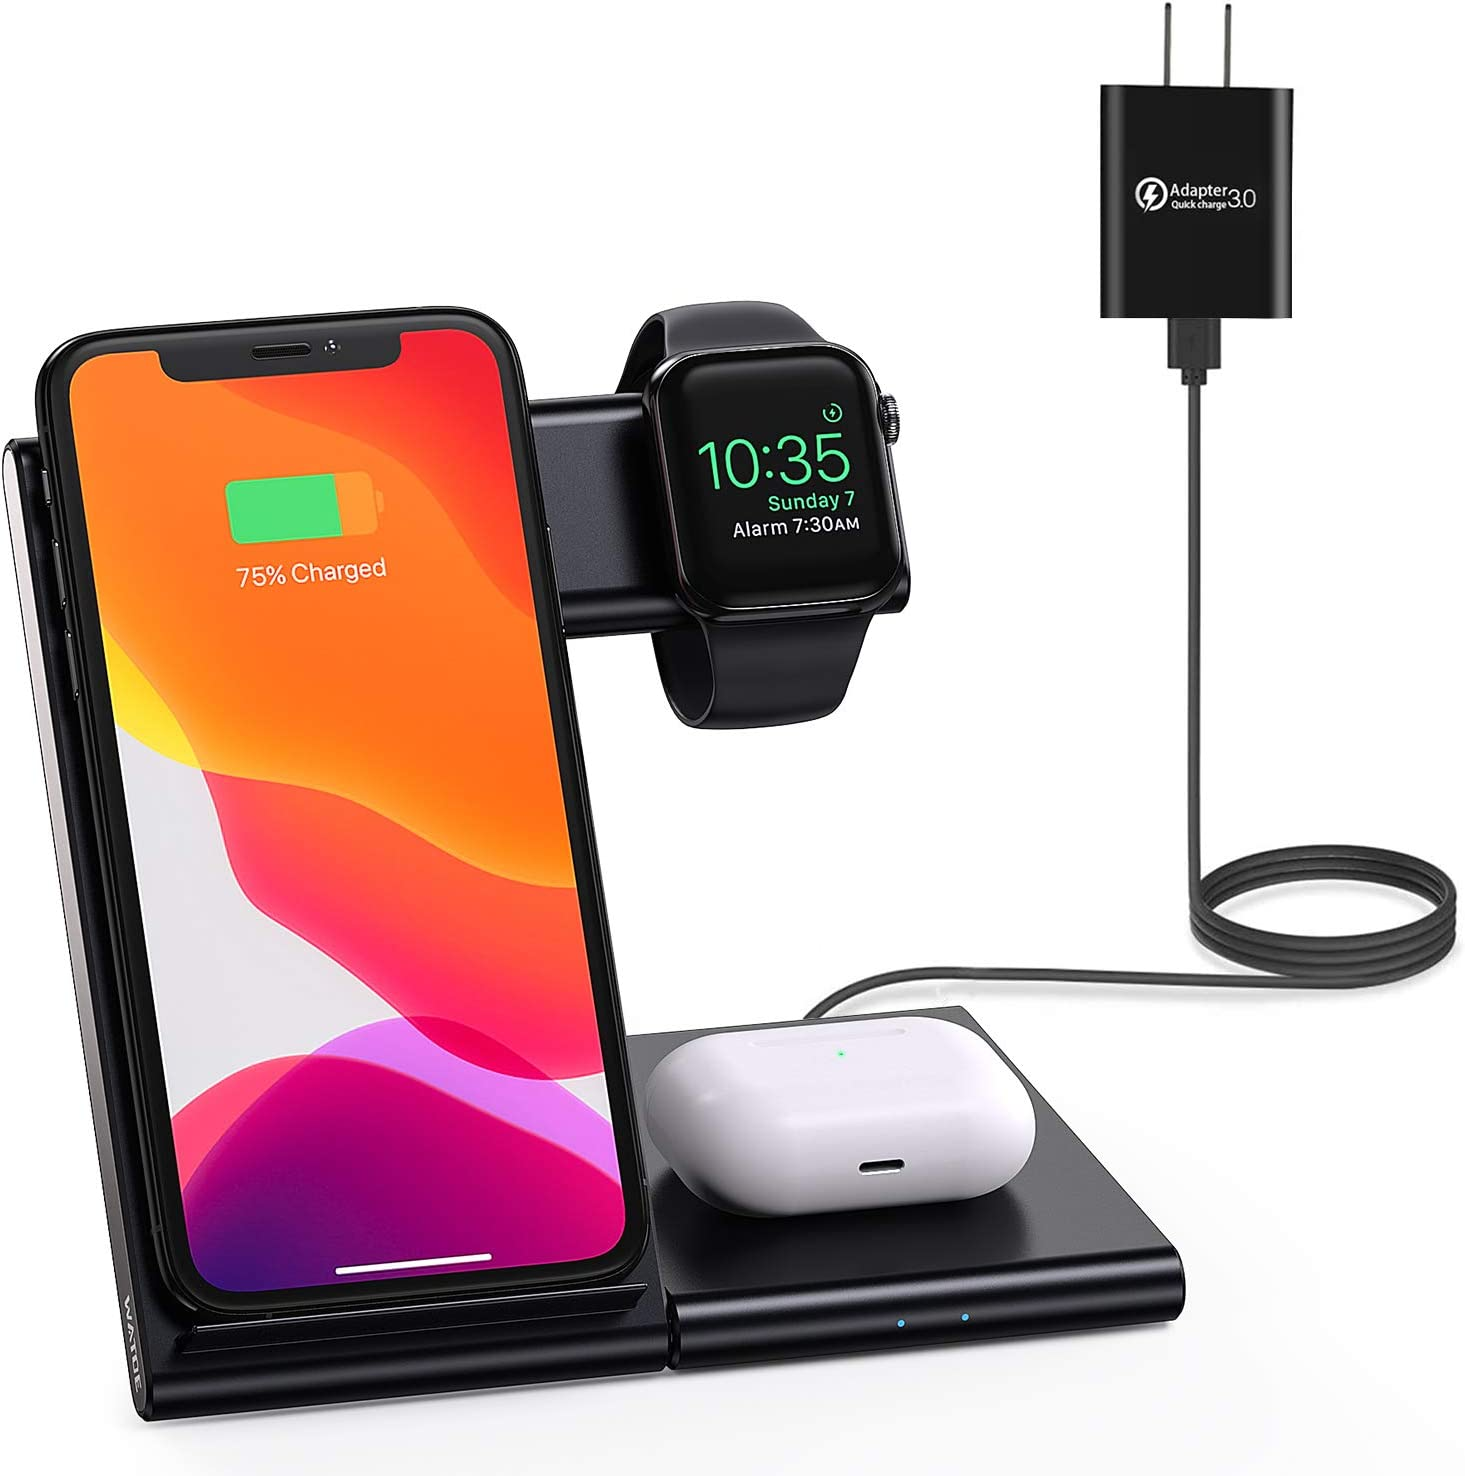 WATOE Wireless Charger 3 in 1 Qi-Certified Fast Charging Station,Compatible iPhone SE/11/11 Pro/X/XS/XR/Xs Max/8 Plus,Charging Stand for AirPods Pro/2, Compatible Apple Watch Series 6/5/4/3/2/SE